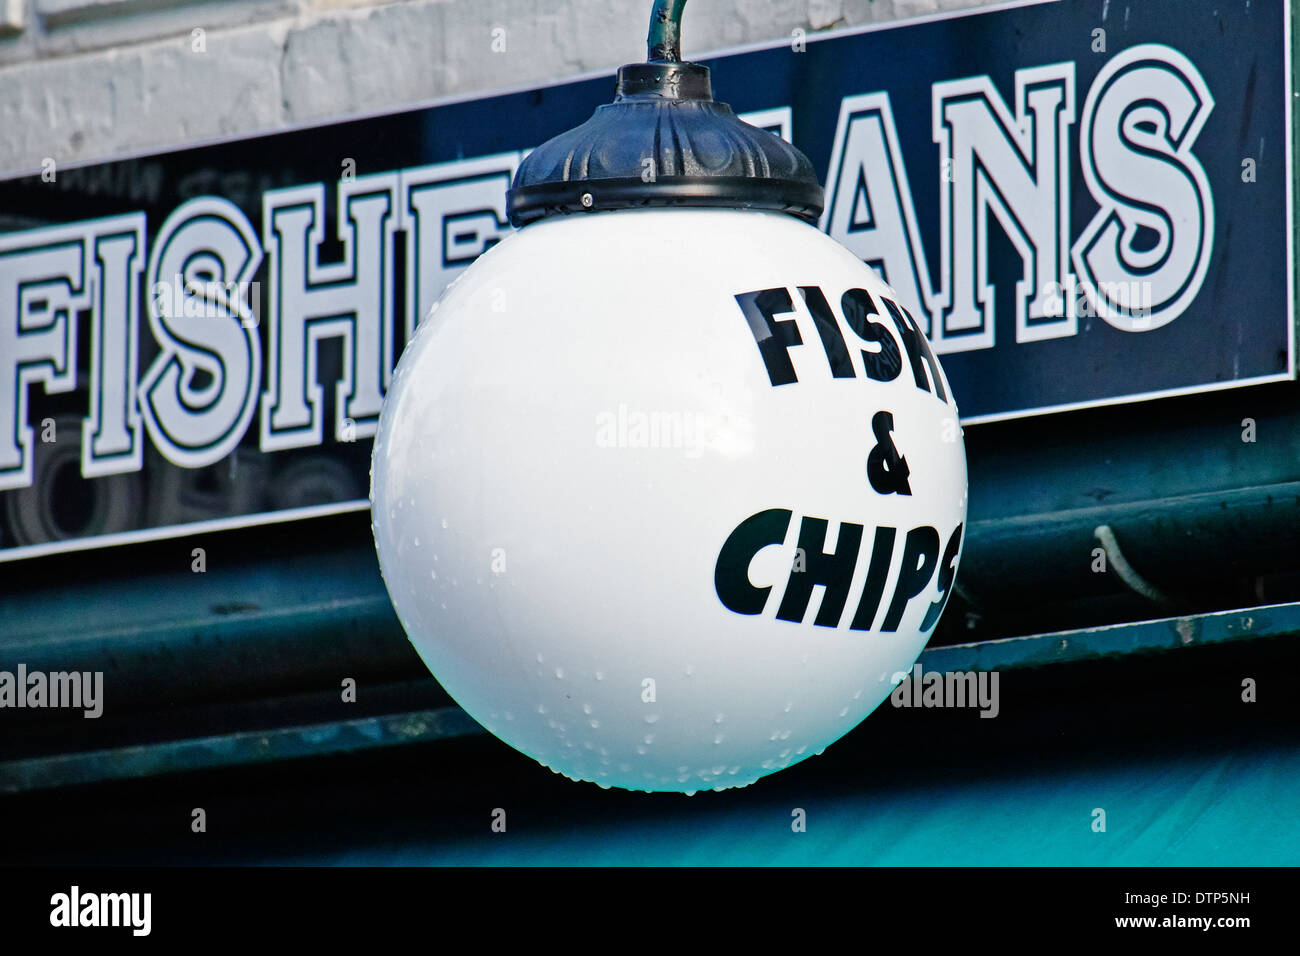 A sign outside a Fish and Chip shop. Stock Photo